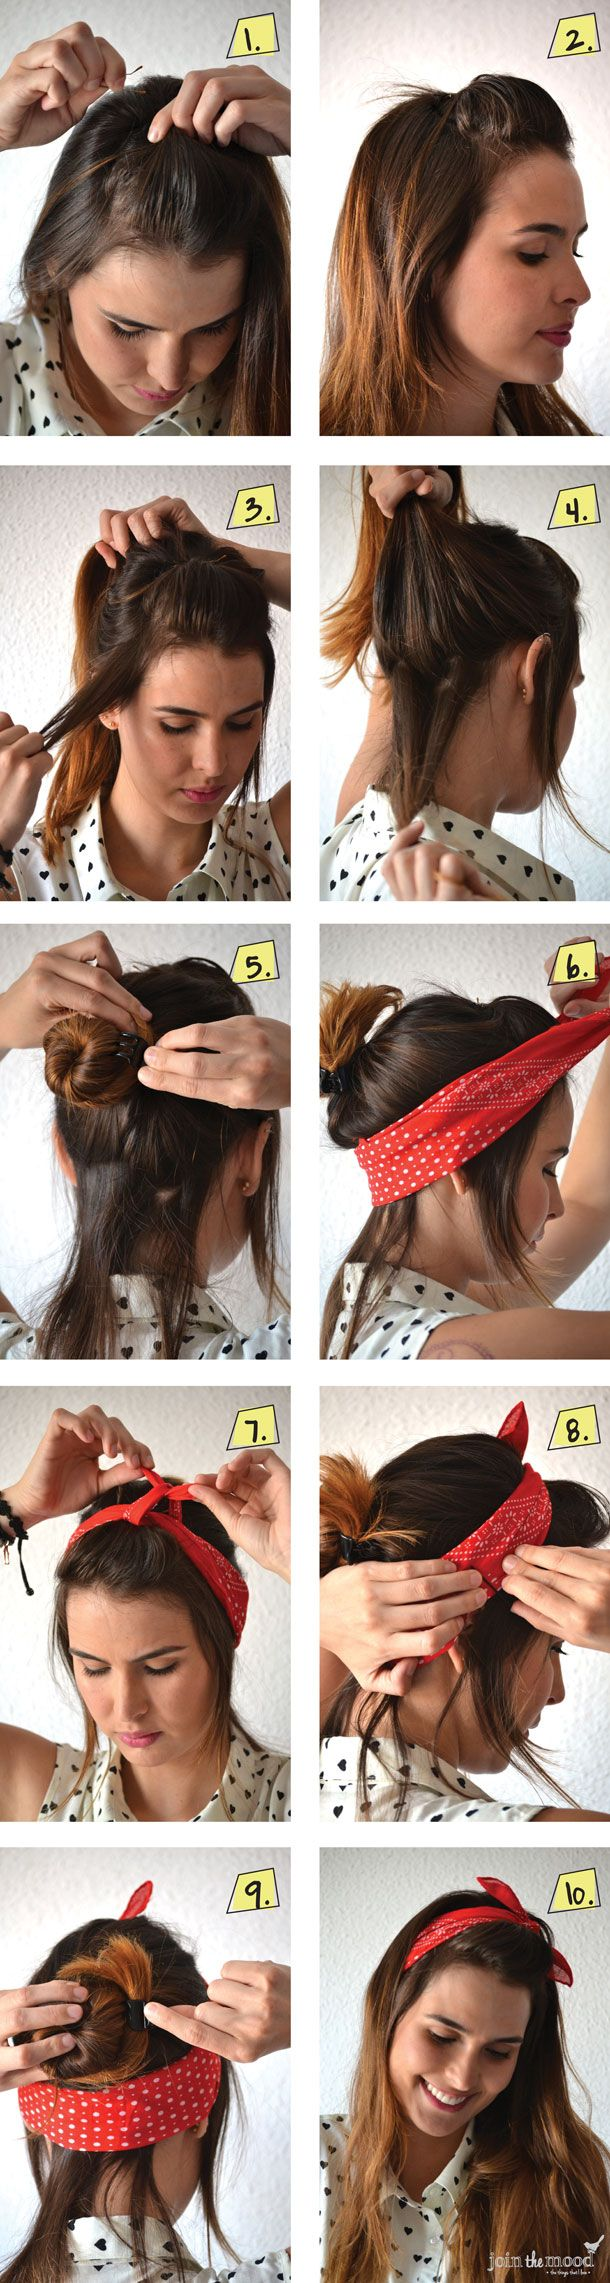 14 Tutorials For Bandana Hairstyles Pretty Designs